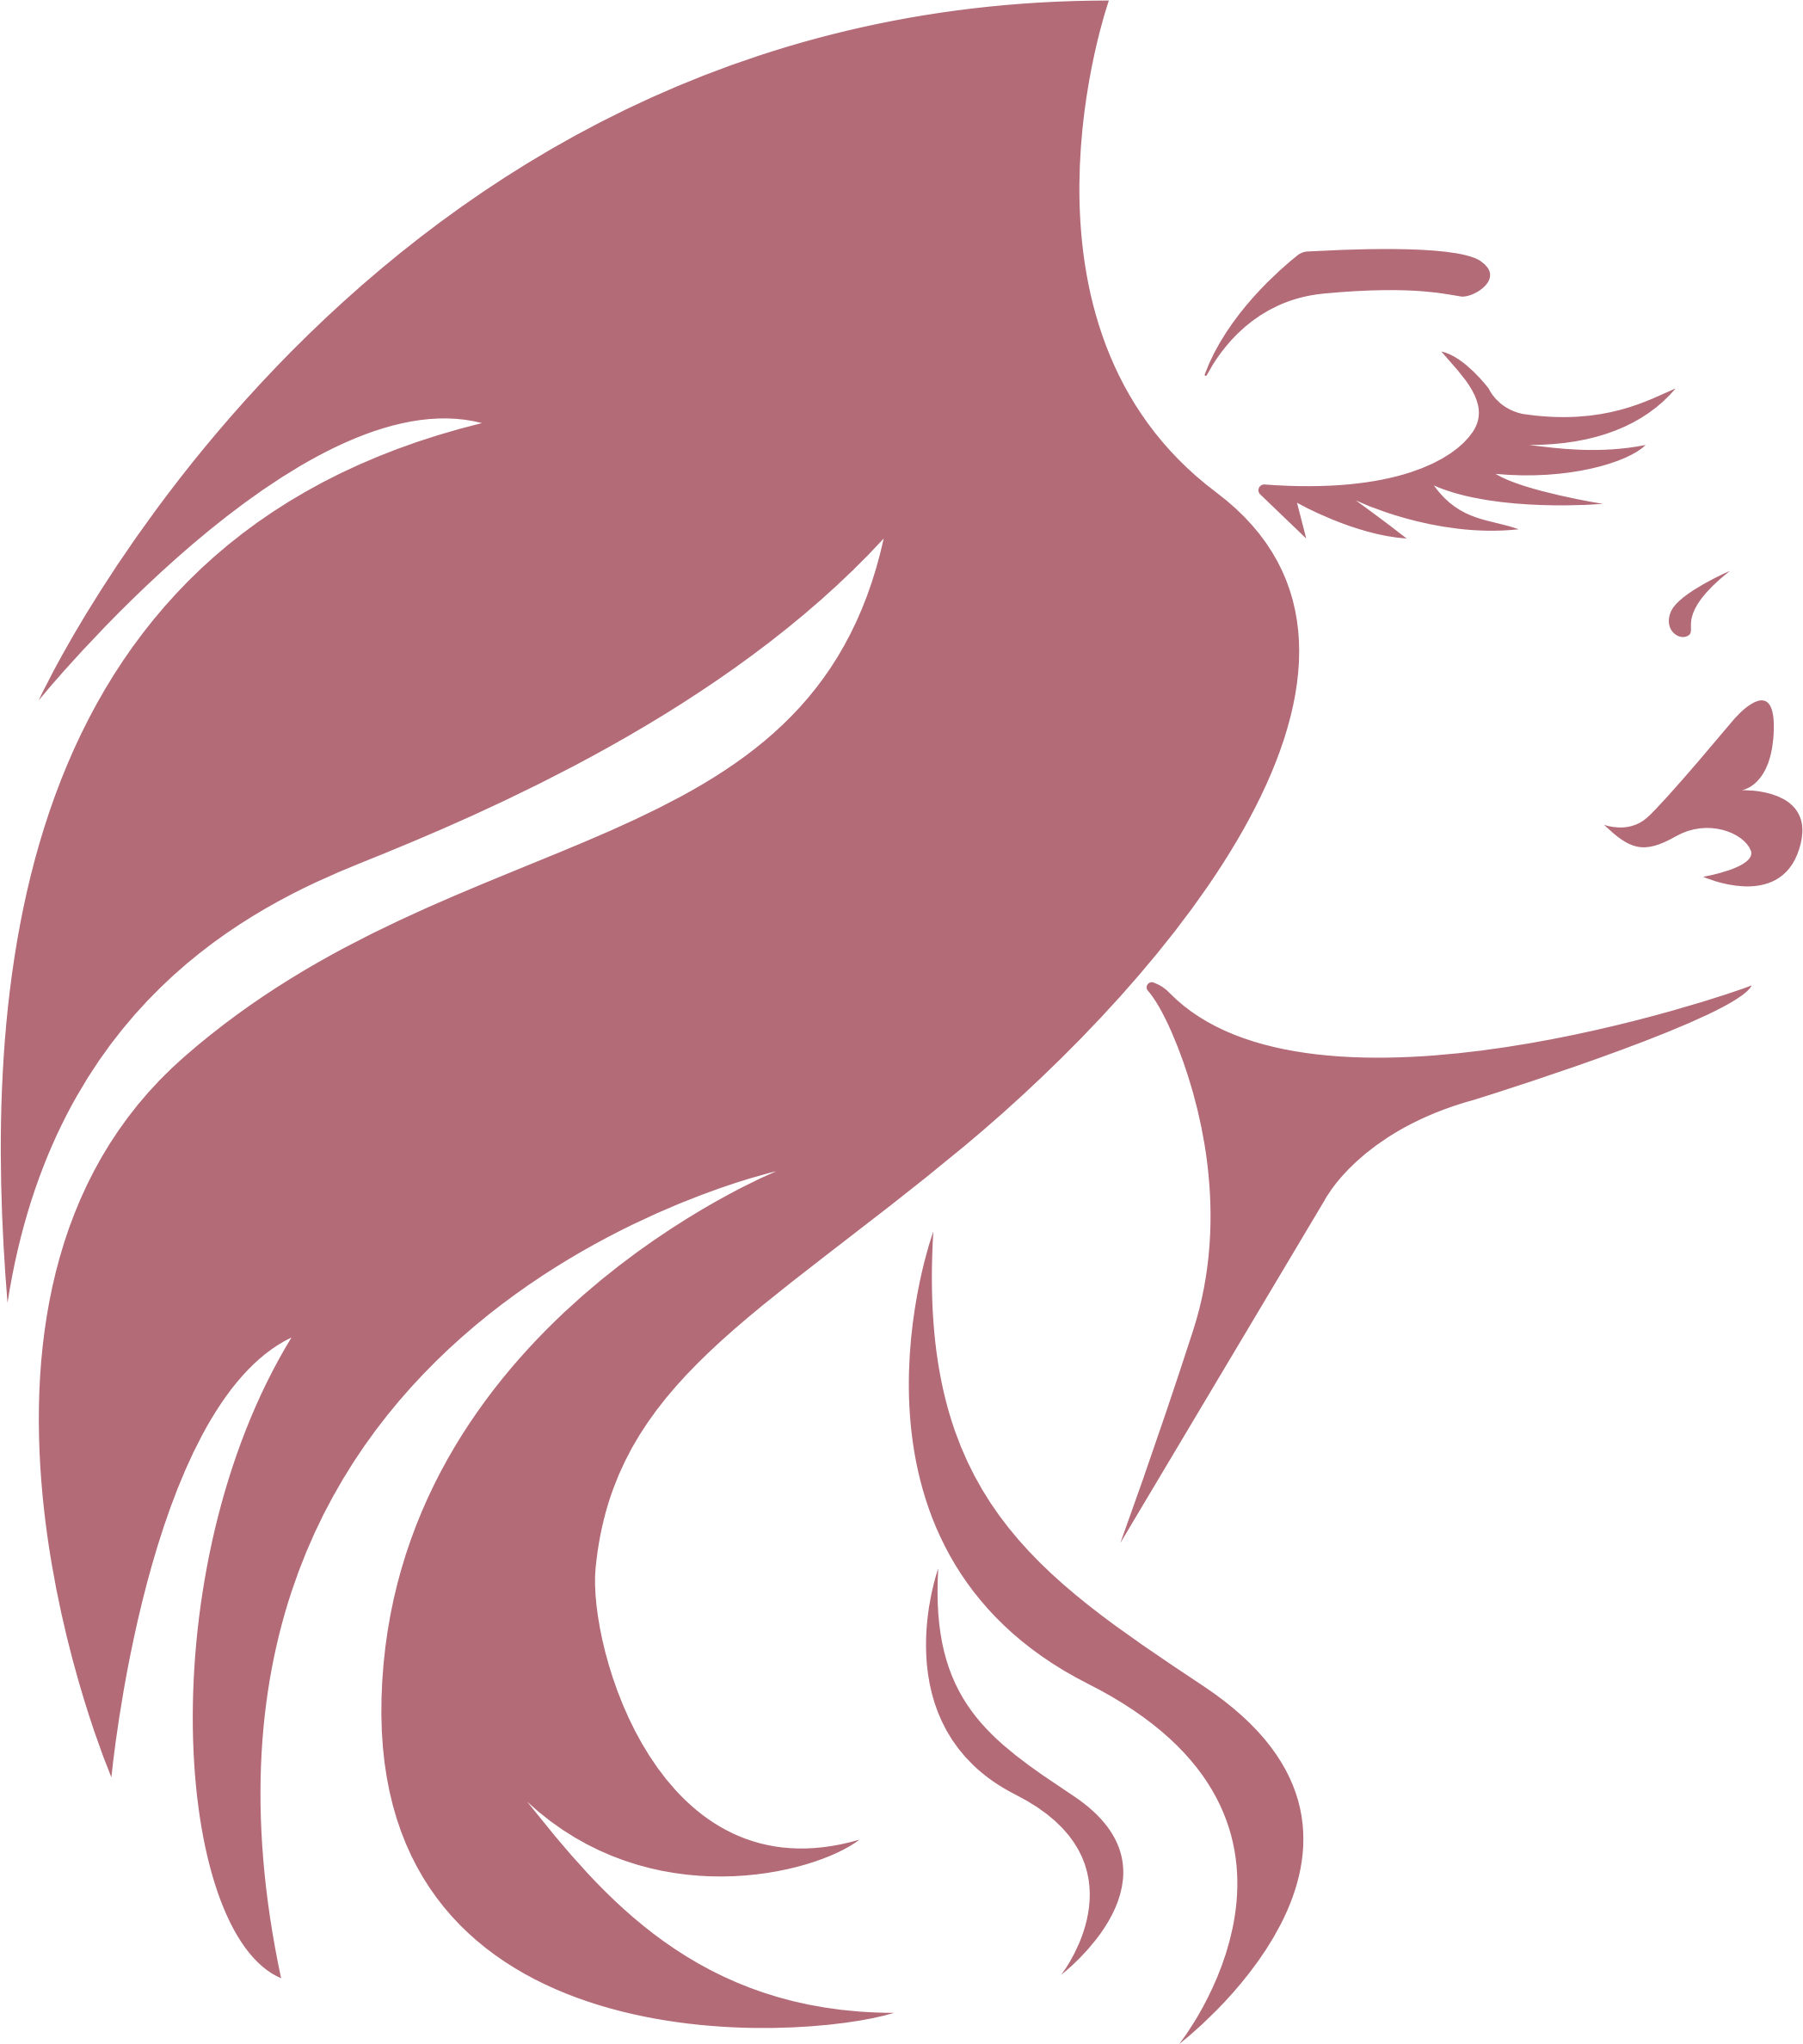 Woman with big image. Eyelashes clipart woman's